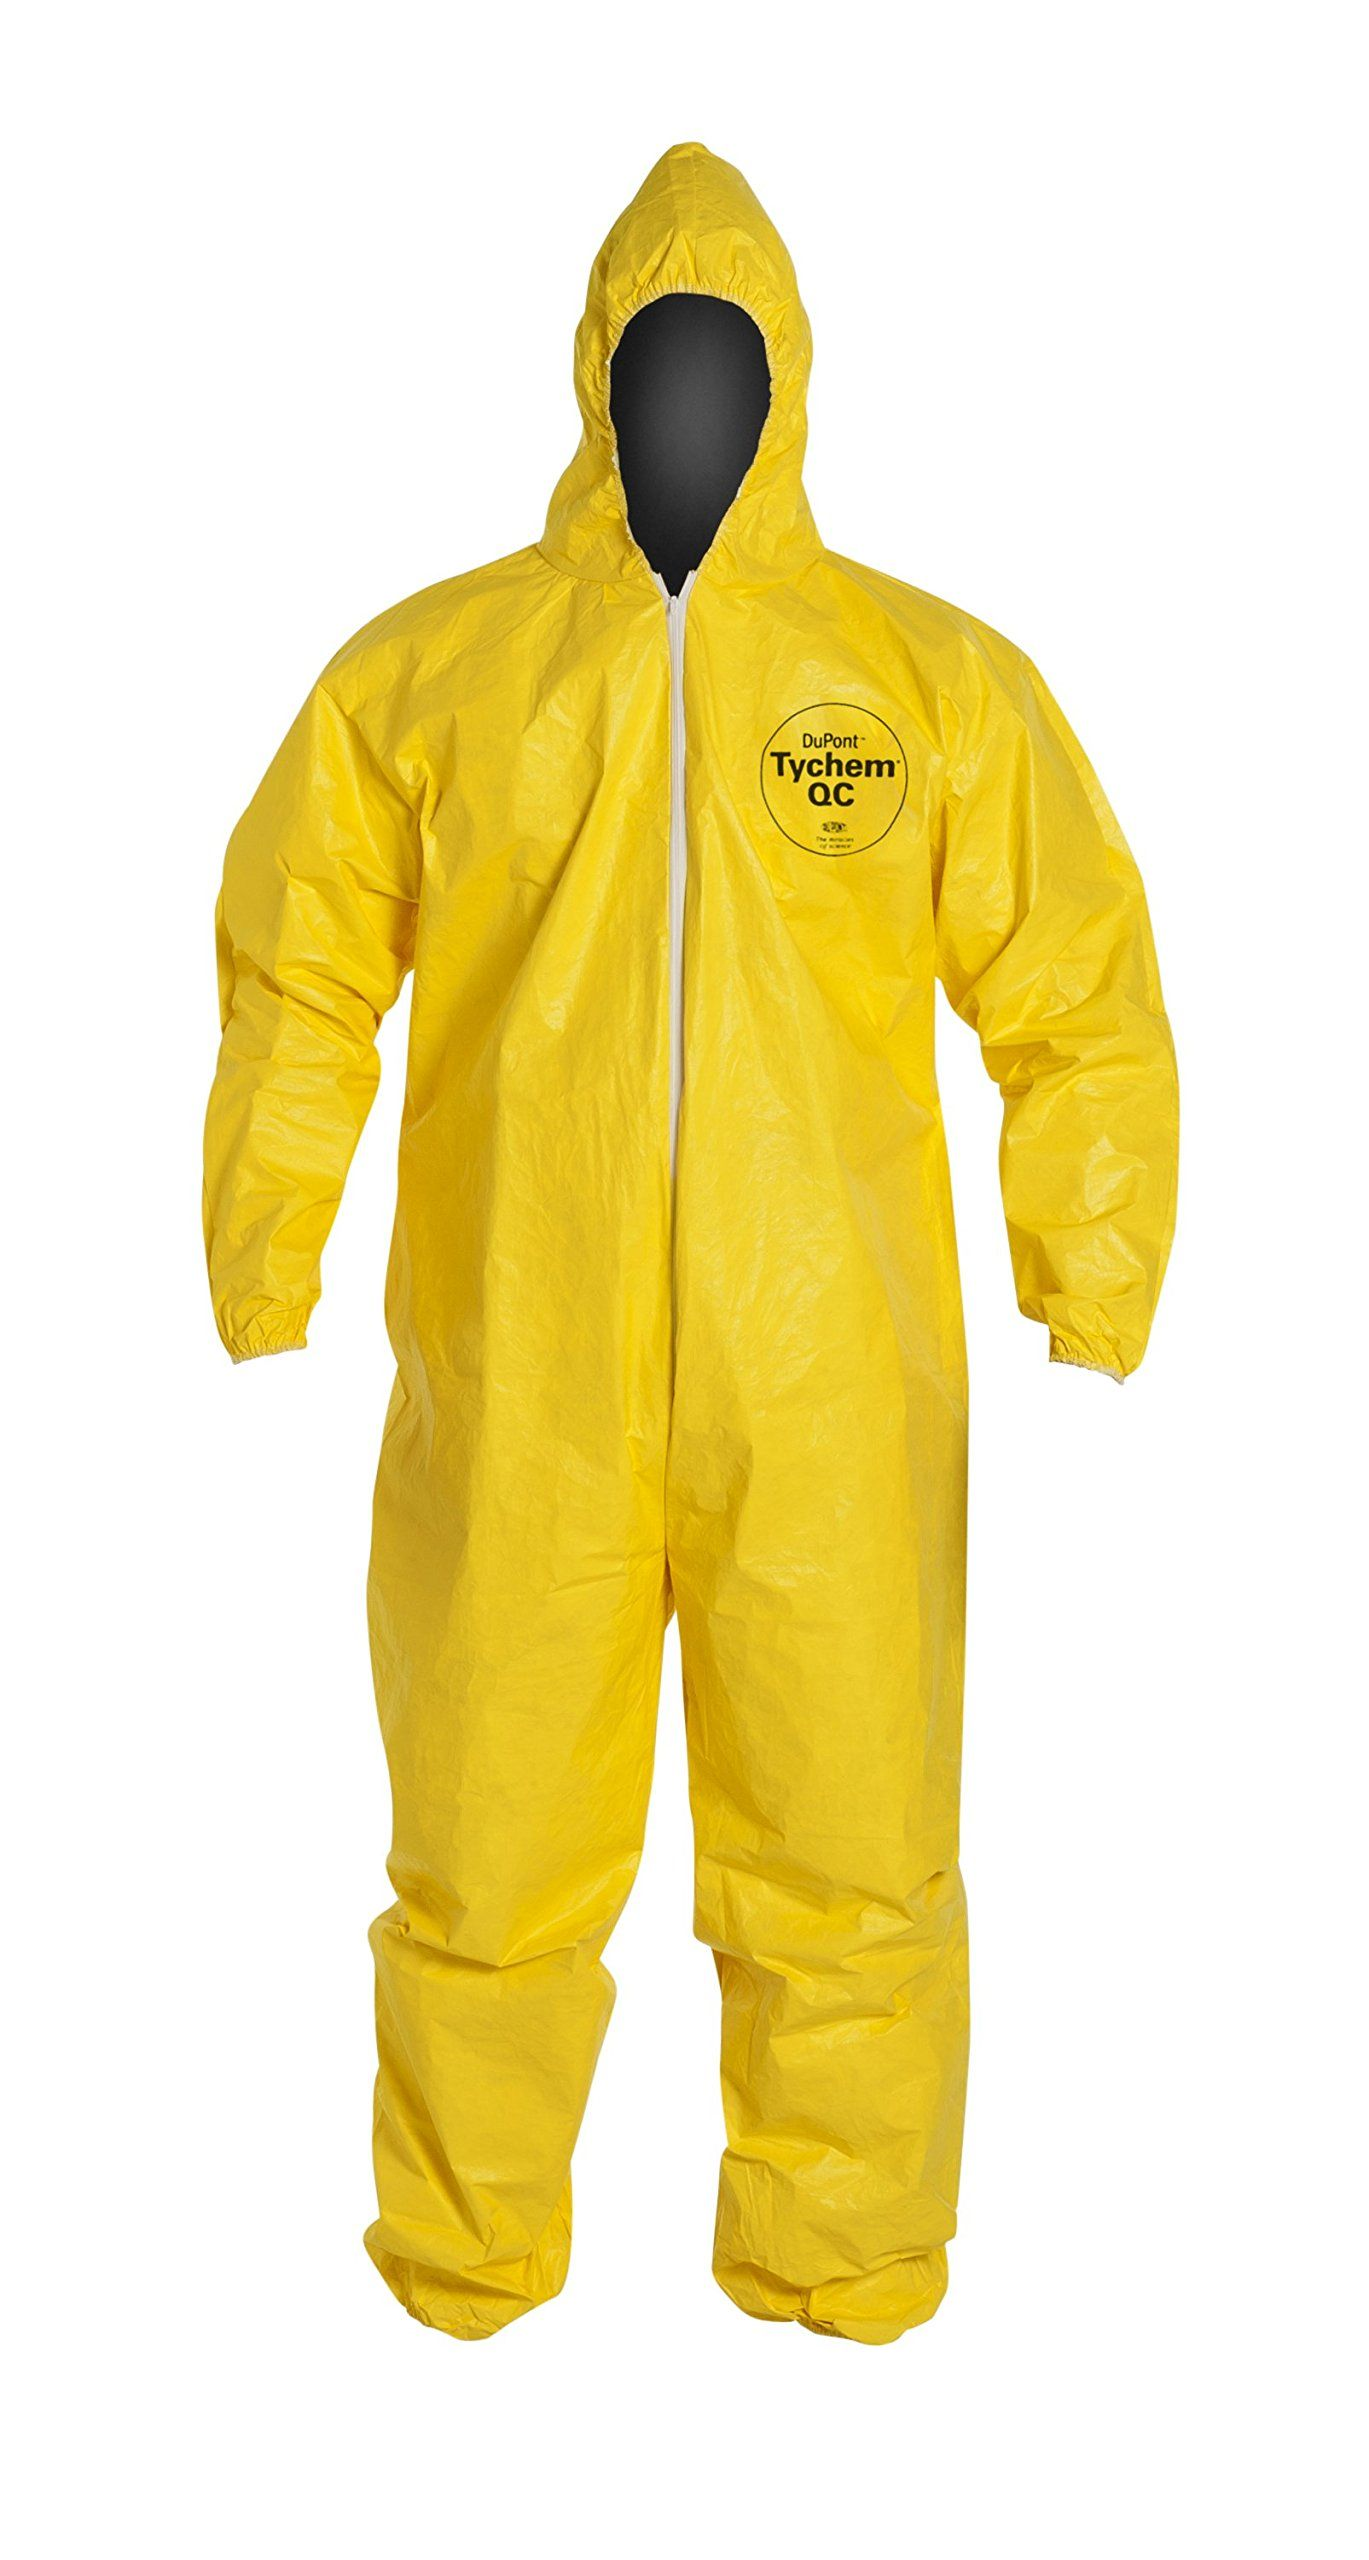 Dupont qc127s tychem coverall with hood